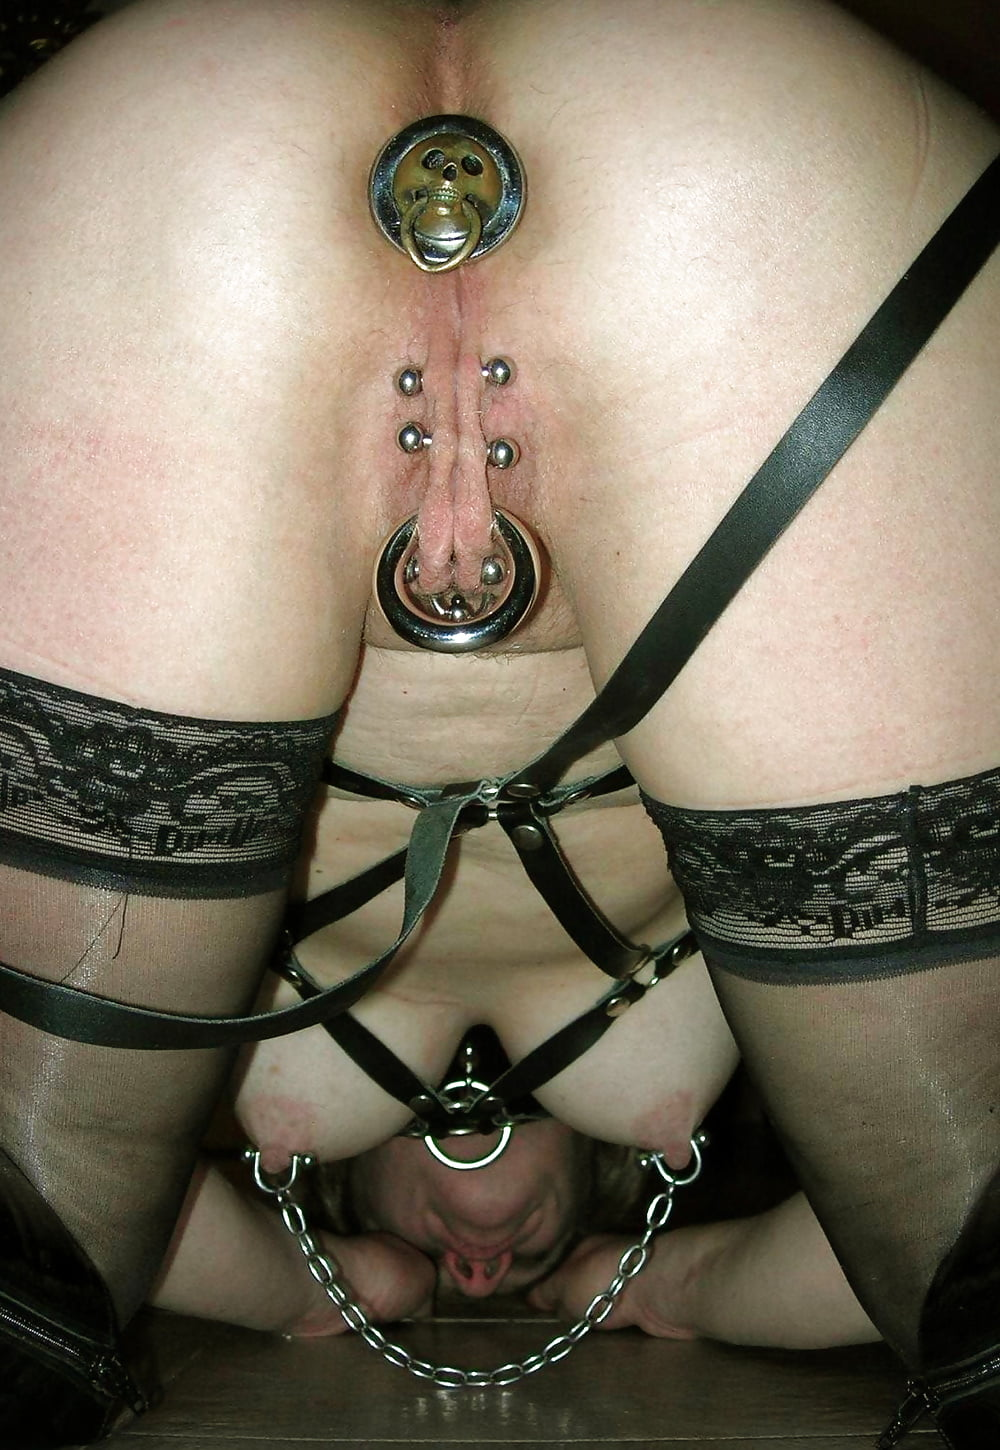 7 instrumente finale furioso pain plug and pleasure - 2 part 9